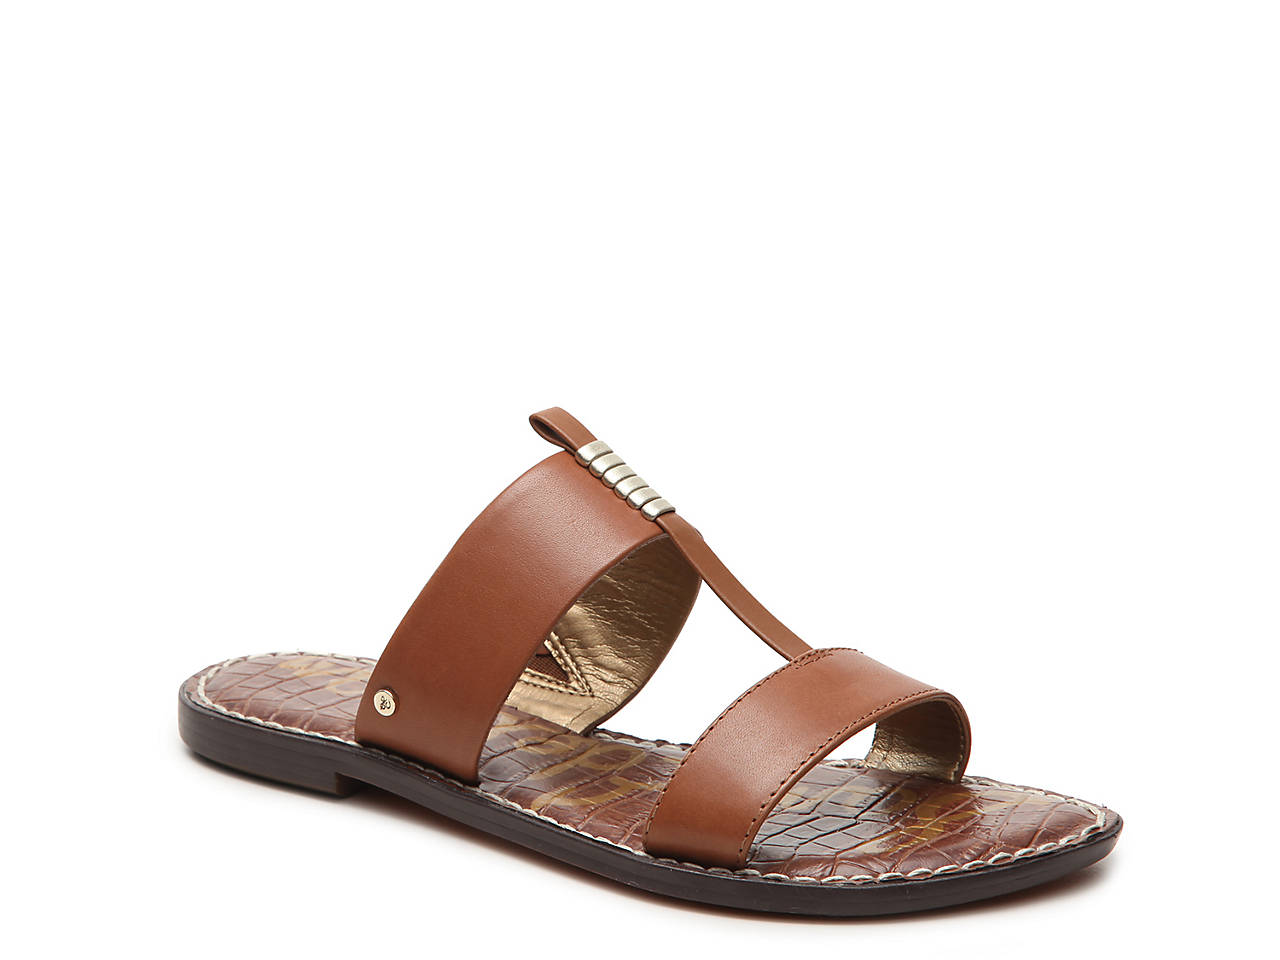 a0cd96da85648 Sam Edelman Kane Flat Sandal Women s Shoes